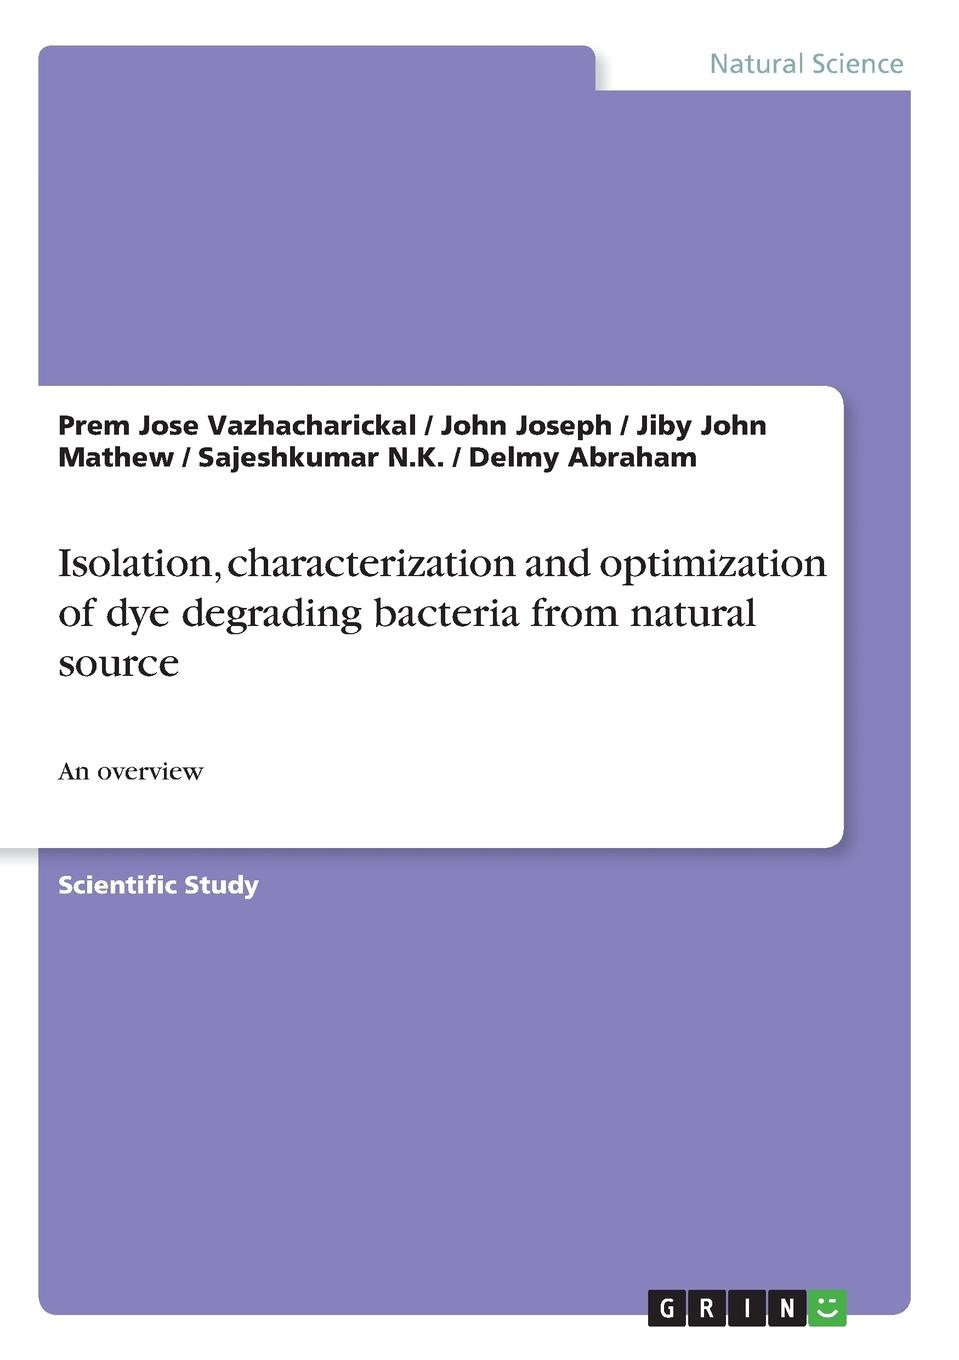 Jiby John Mathew, Sajeshkumar N.K., Prem Jose Vazhacharickal Isolation, characterization and optimization of dye degrading bacteria from natural source jiby john mathew prem jose vazhacharickal sajeshkumar n k the honey apple and its phytochemical analysis